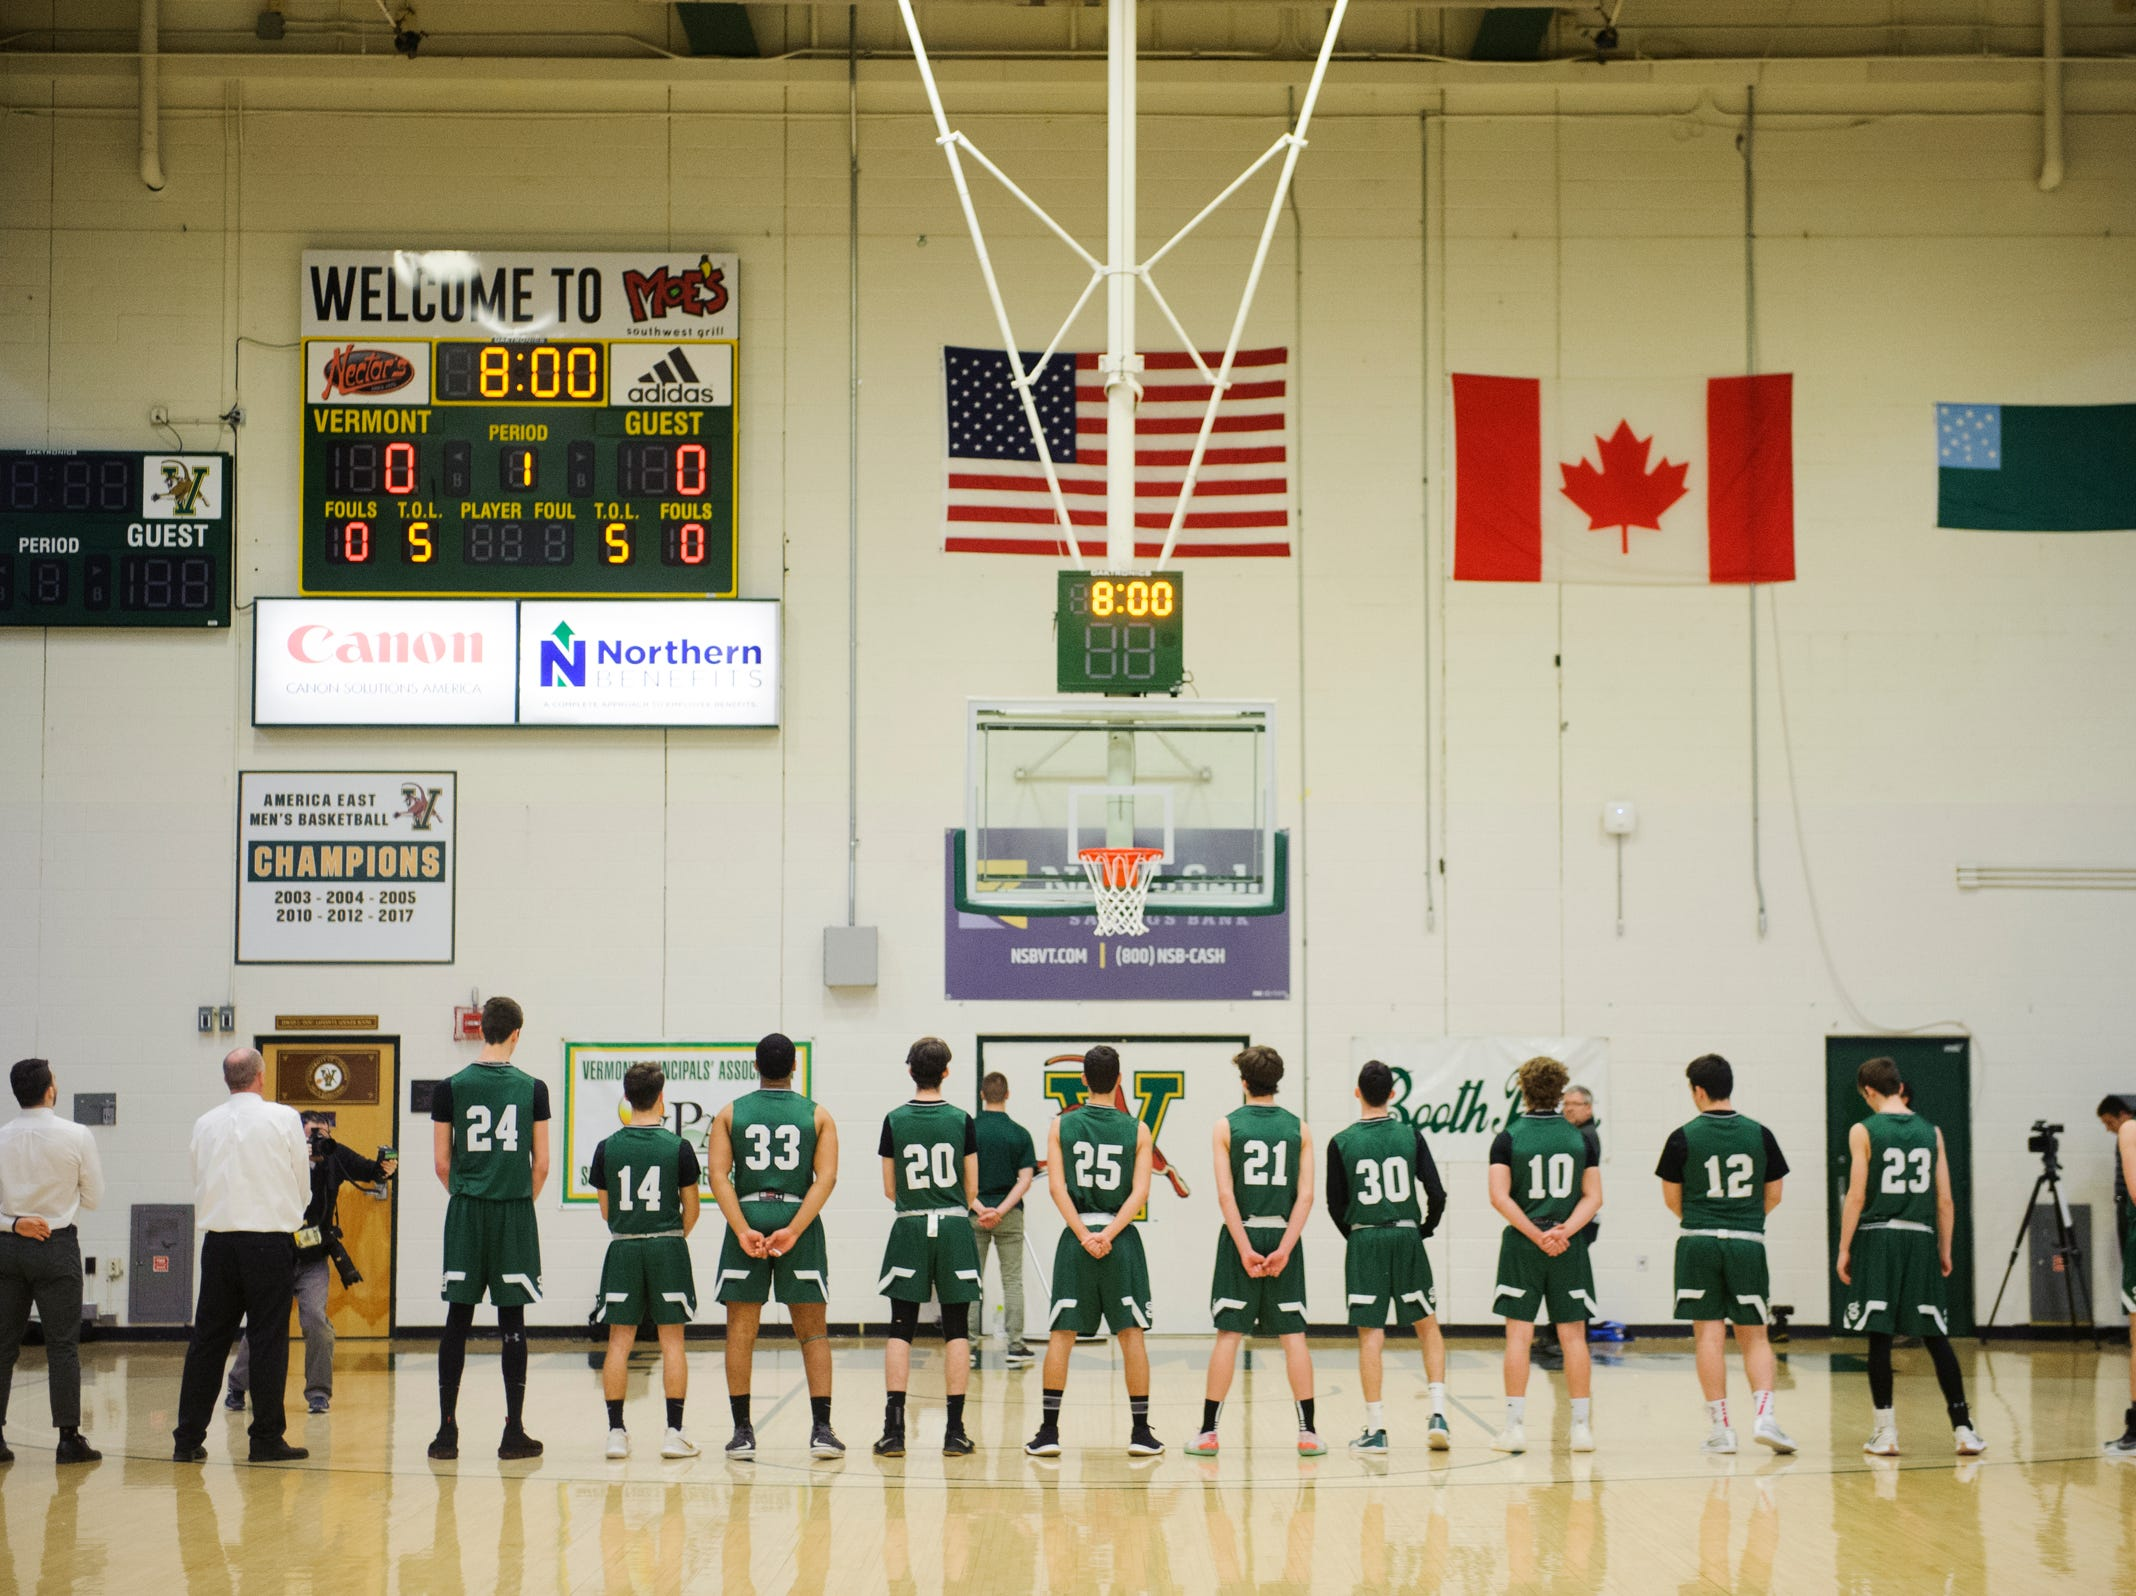 St. Johnsbury listens to the National Anthem during the DI boys basketball championship game between the St. Johnsbury Hilltoppers and the Rutland Raiders at Patrick Gym on Sunday afternoon March 17, 2019 in Burlington, Vermont.